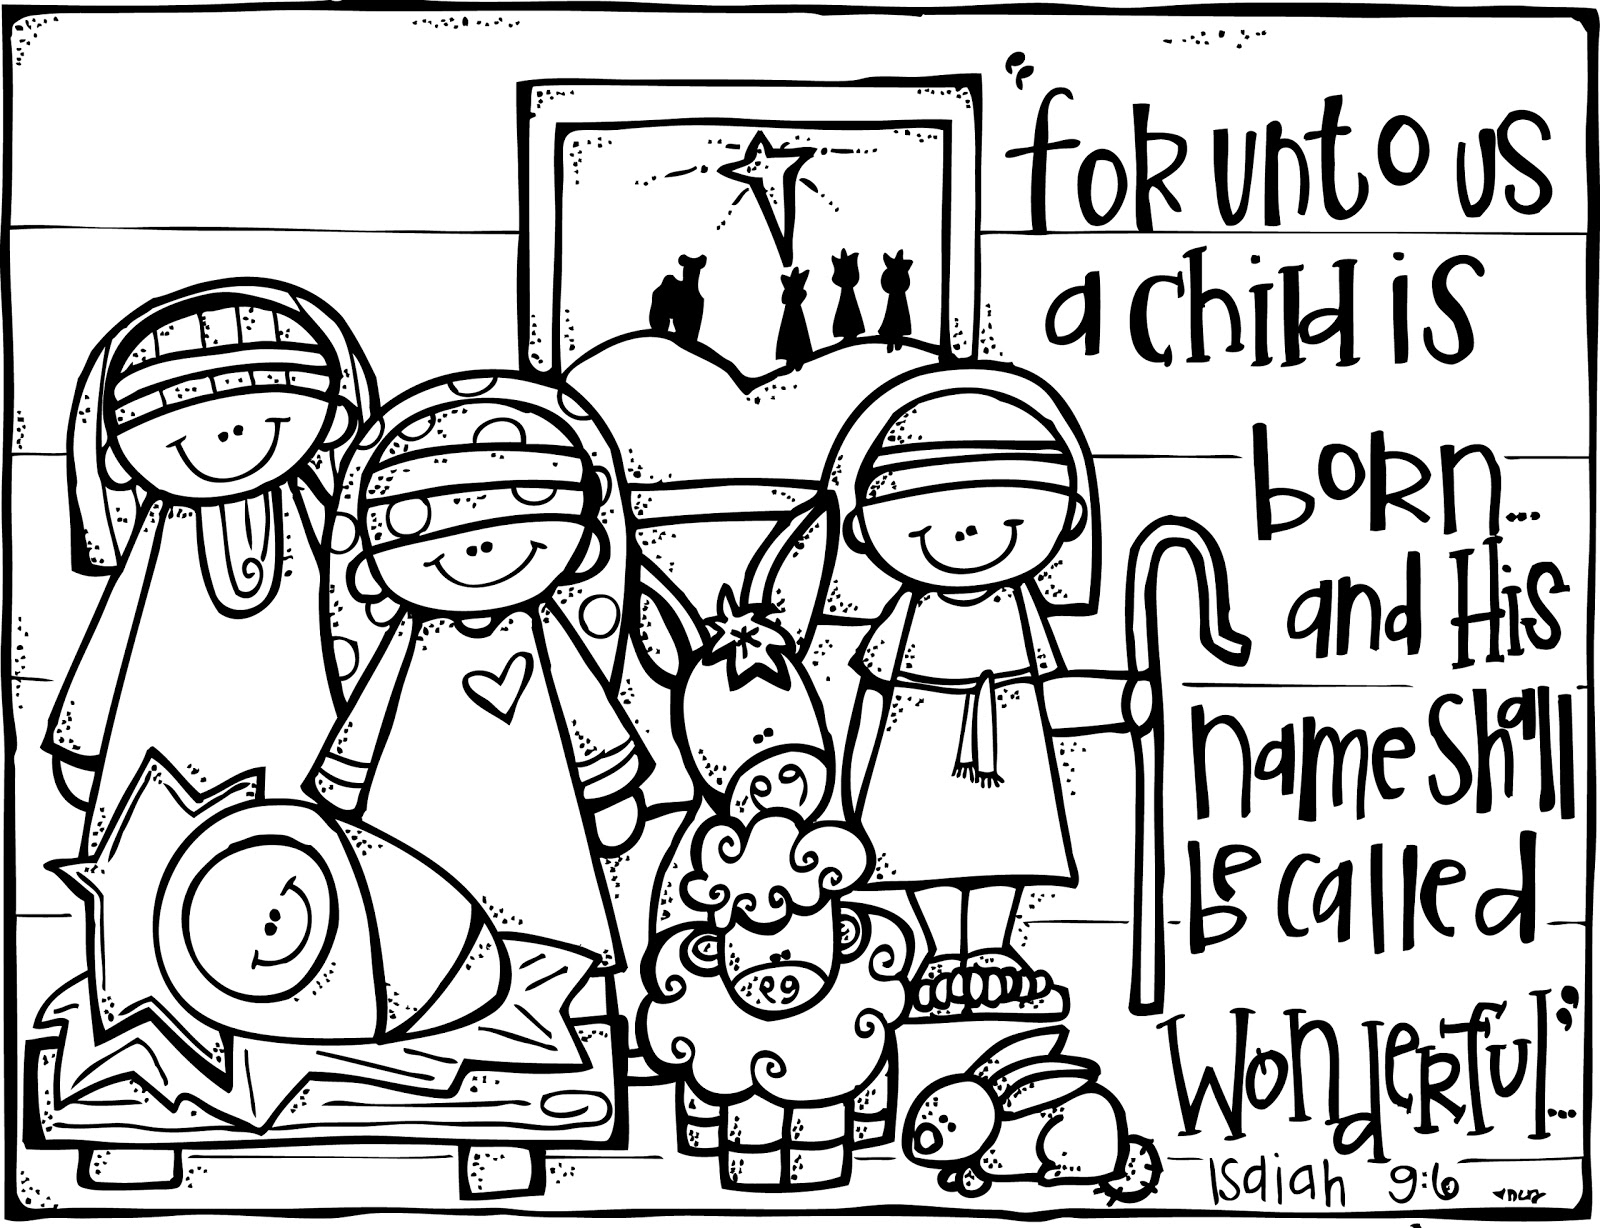 christian christmas coloring pages - photo#21